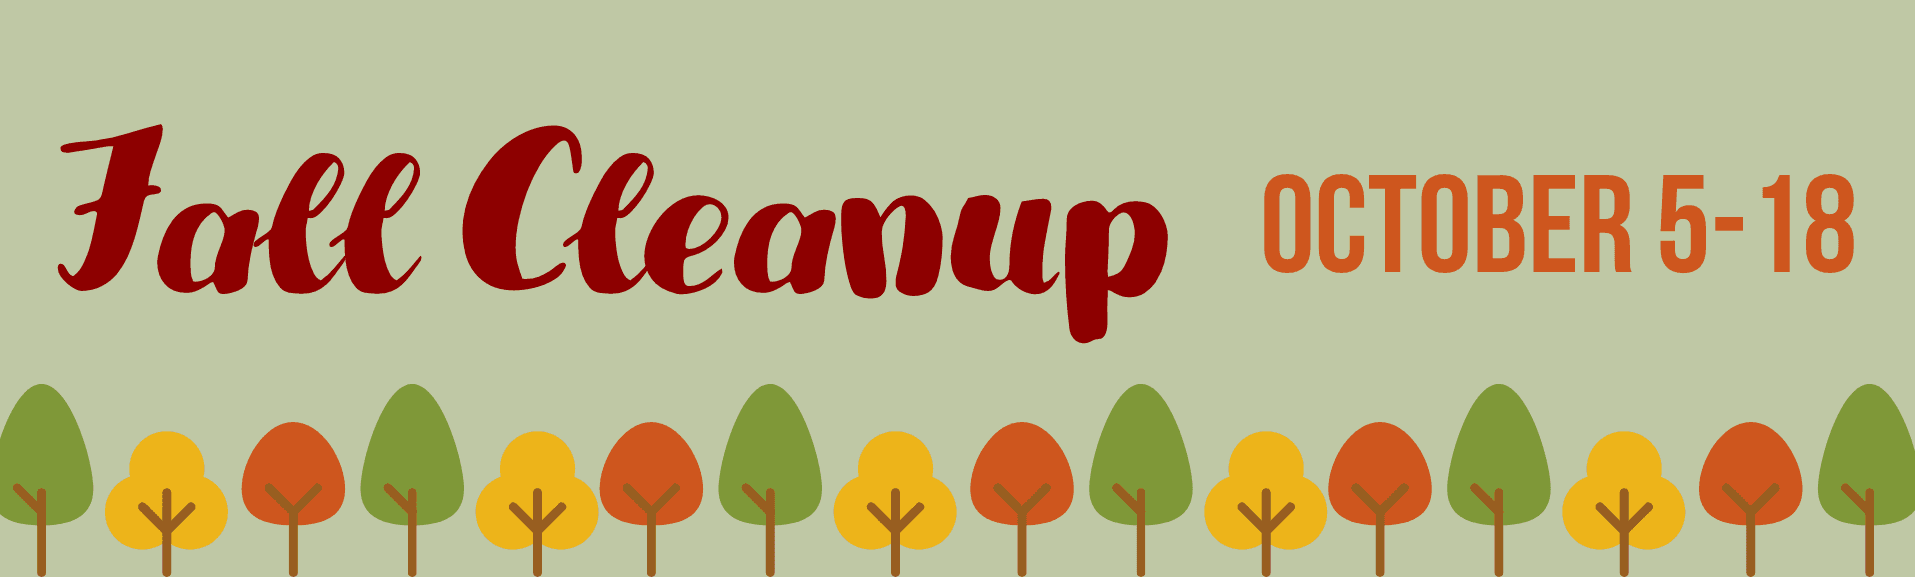 Fall Clean Up from October 5-18